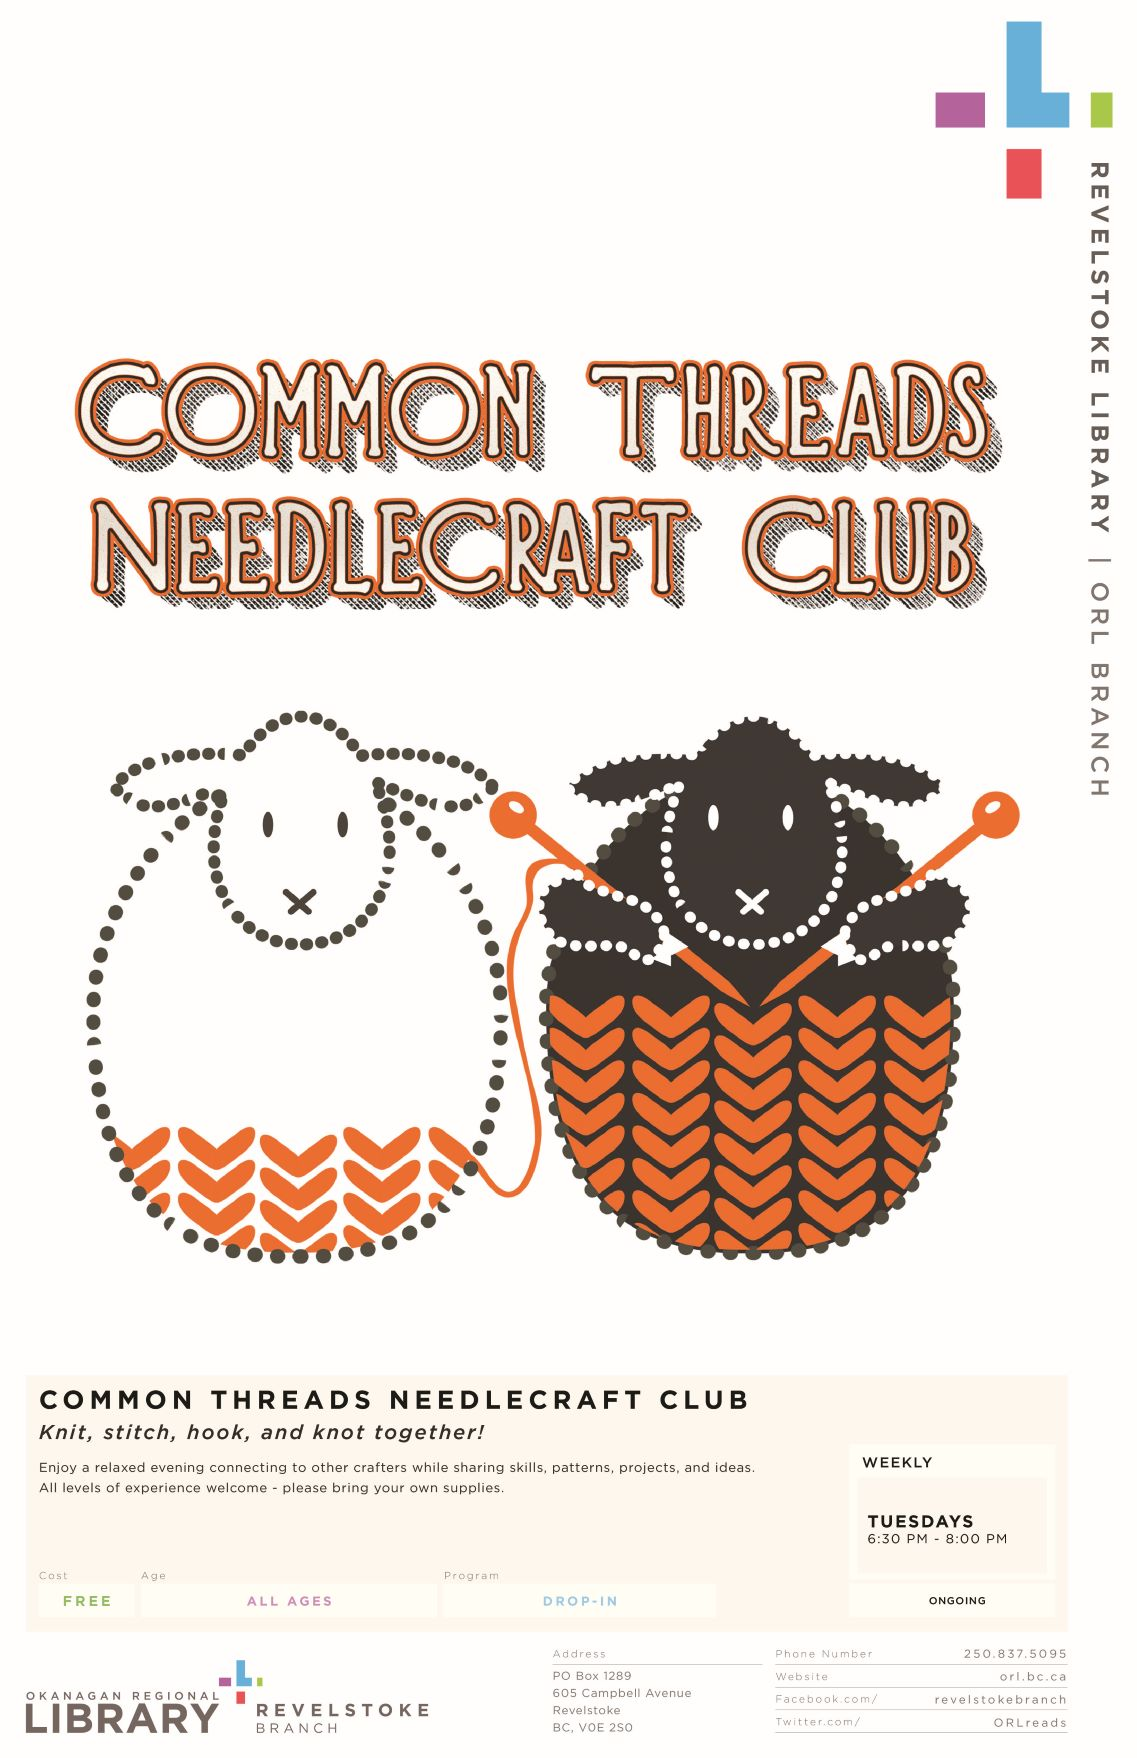 CANCELED - Common Threads Needlecraft Club @ Okanagan Regional Library Revelstoke Branch